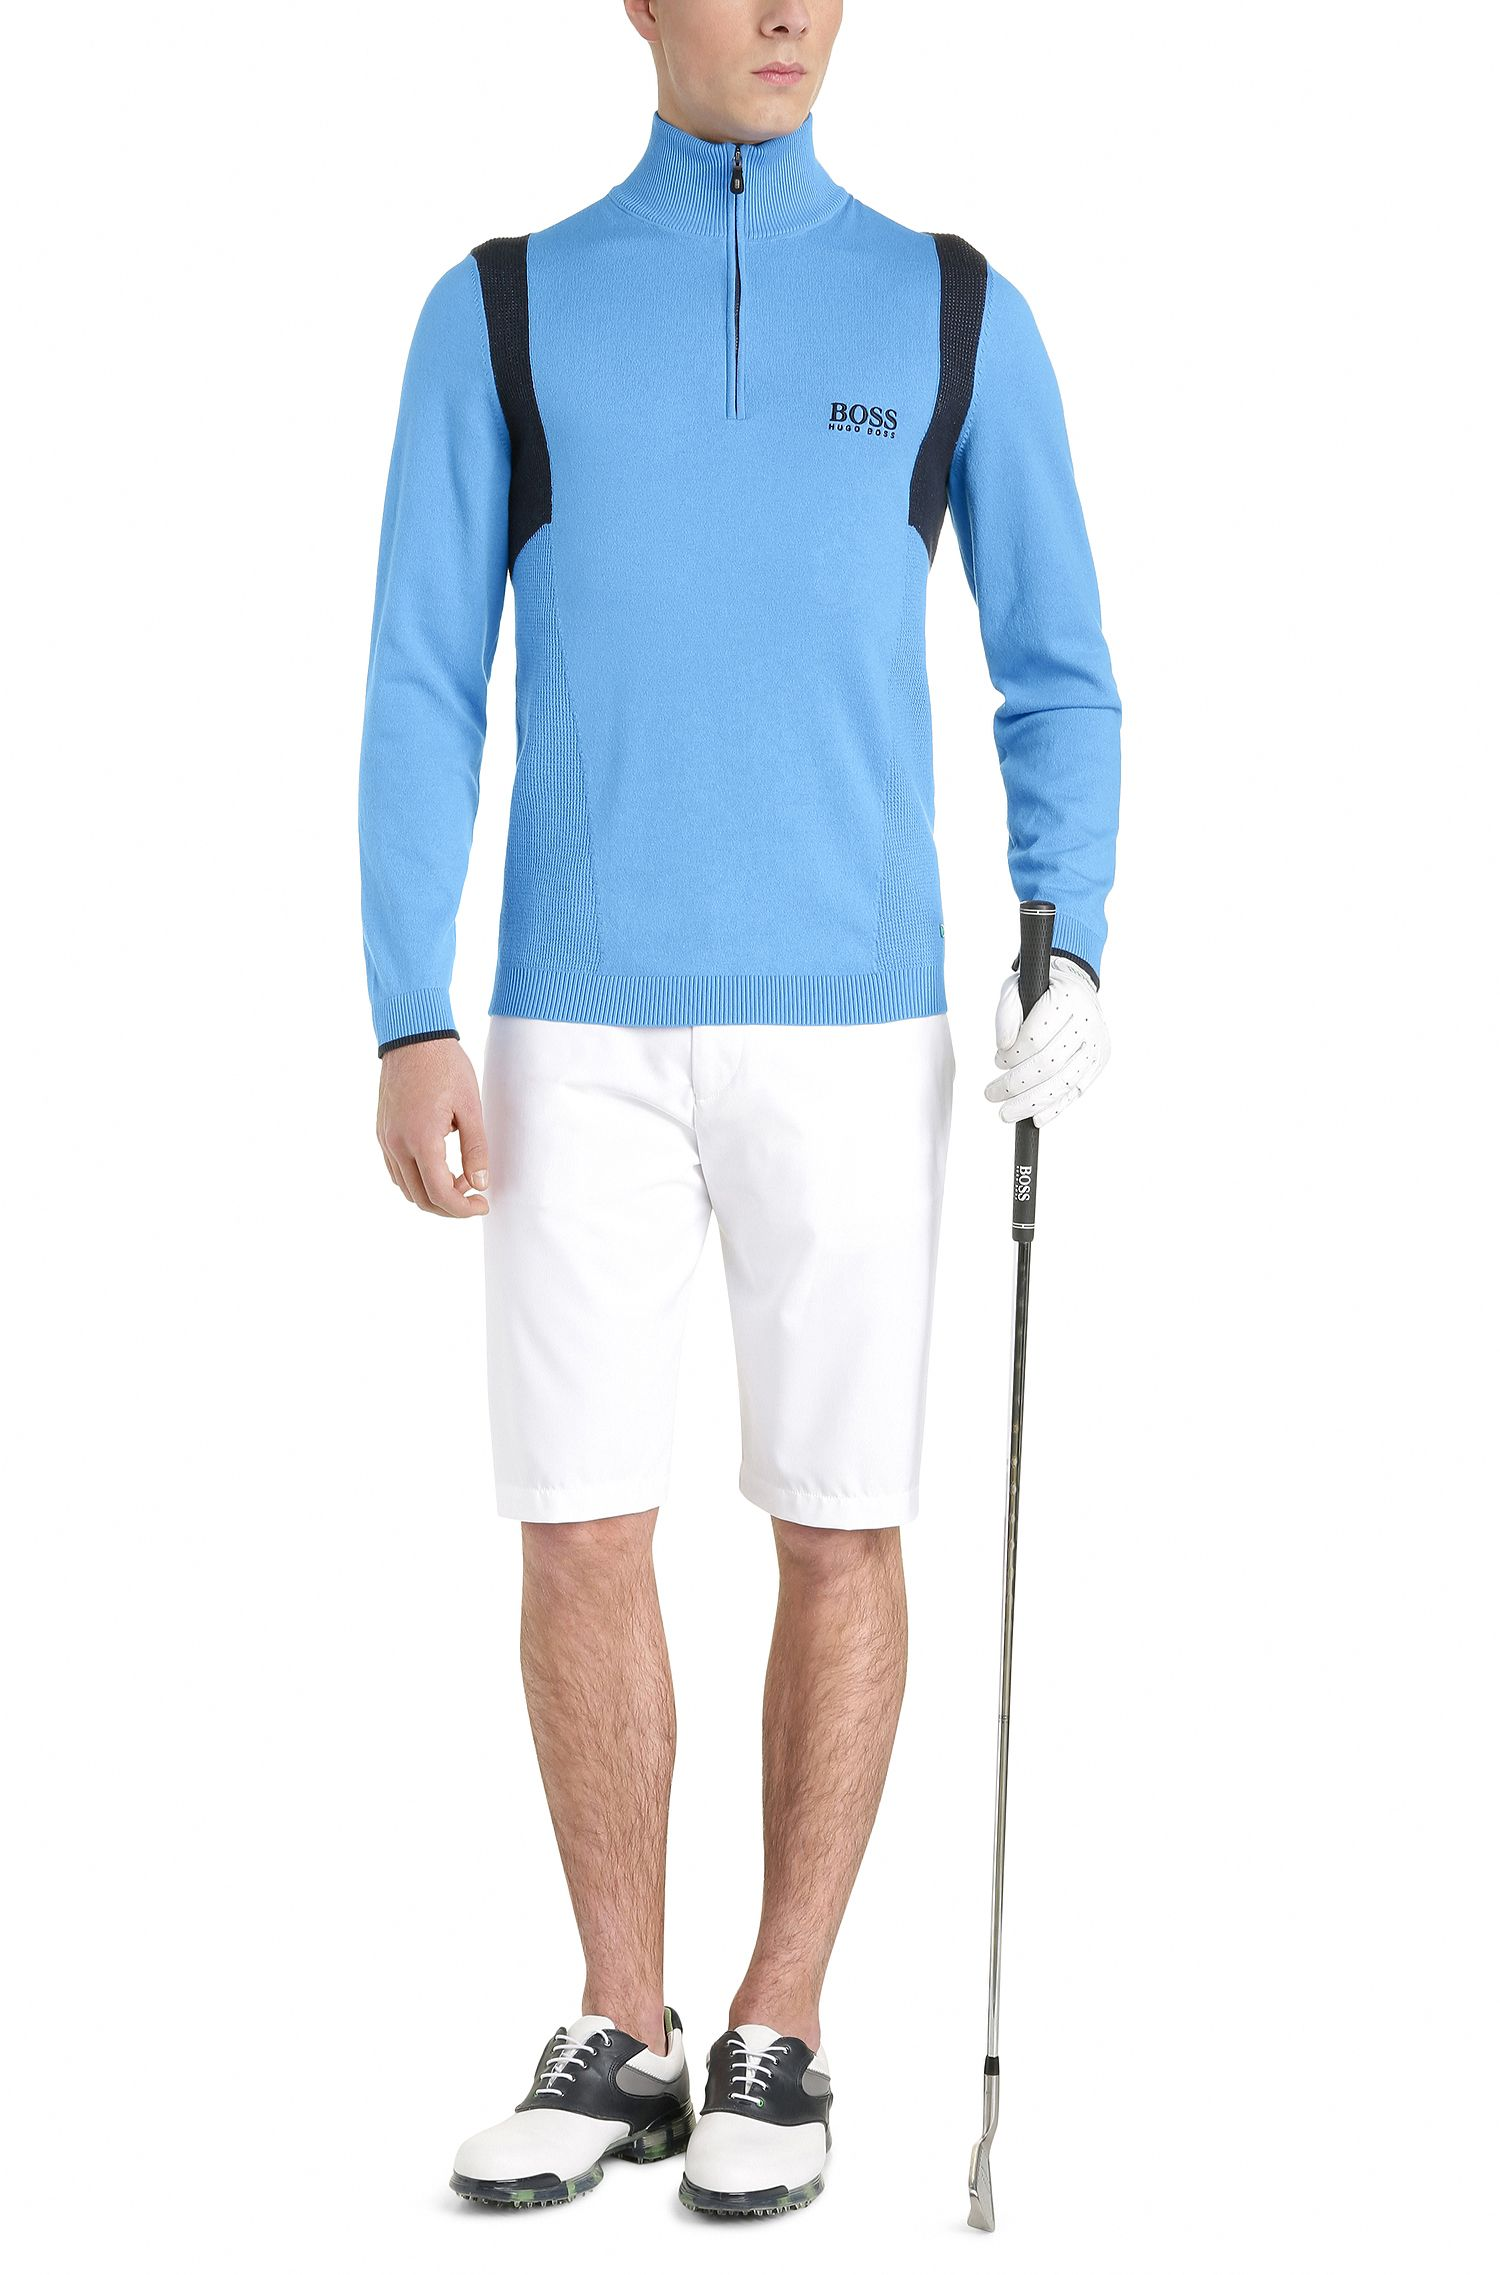 Water-Repellent Stretch Cotton Sweater   Zelichior Pro S17